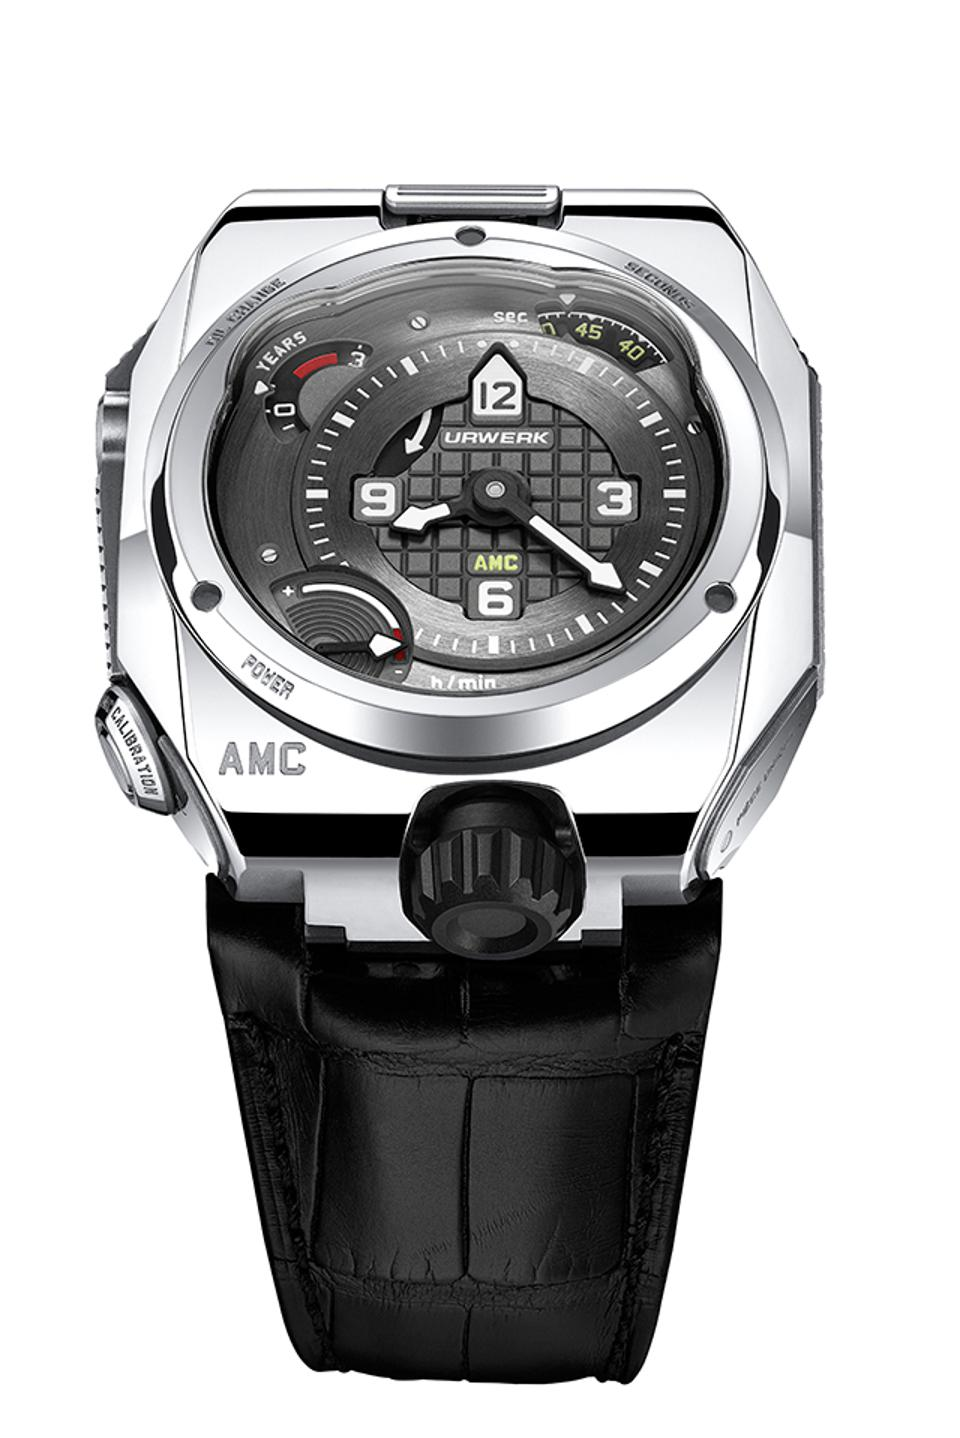 Urwerk took the Audacity prize for the AMC, which uses a combination of mechanical and atomic timekeeping systems.